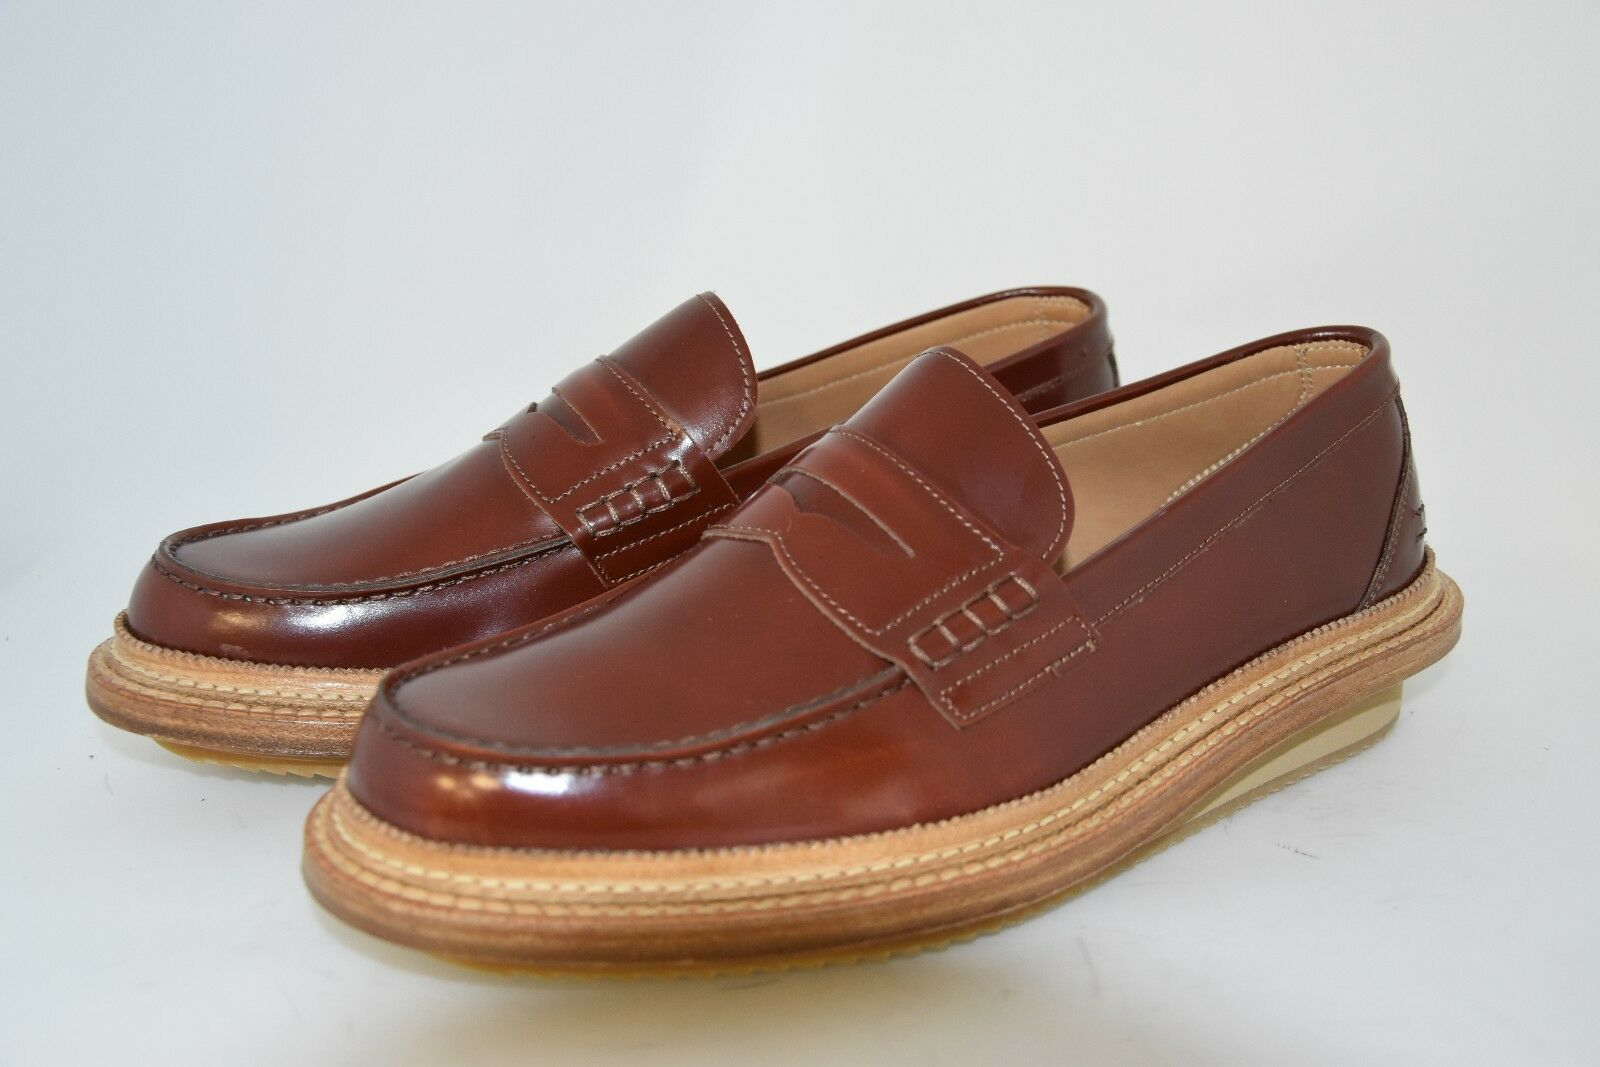 Homme-41-7eu-8usa-PENNY LOAFER-CALF rougeDISH marron-LEATHER+ZEPPA RUBBER SOLE